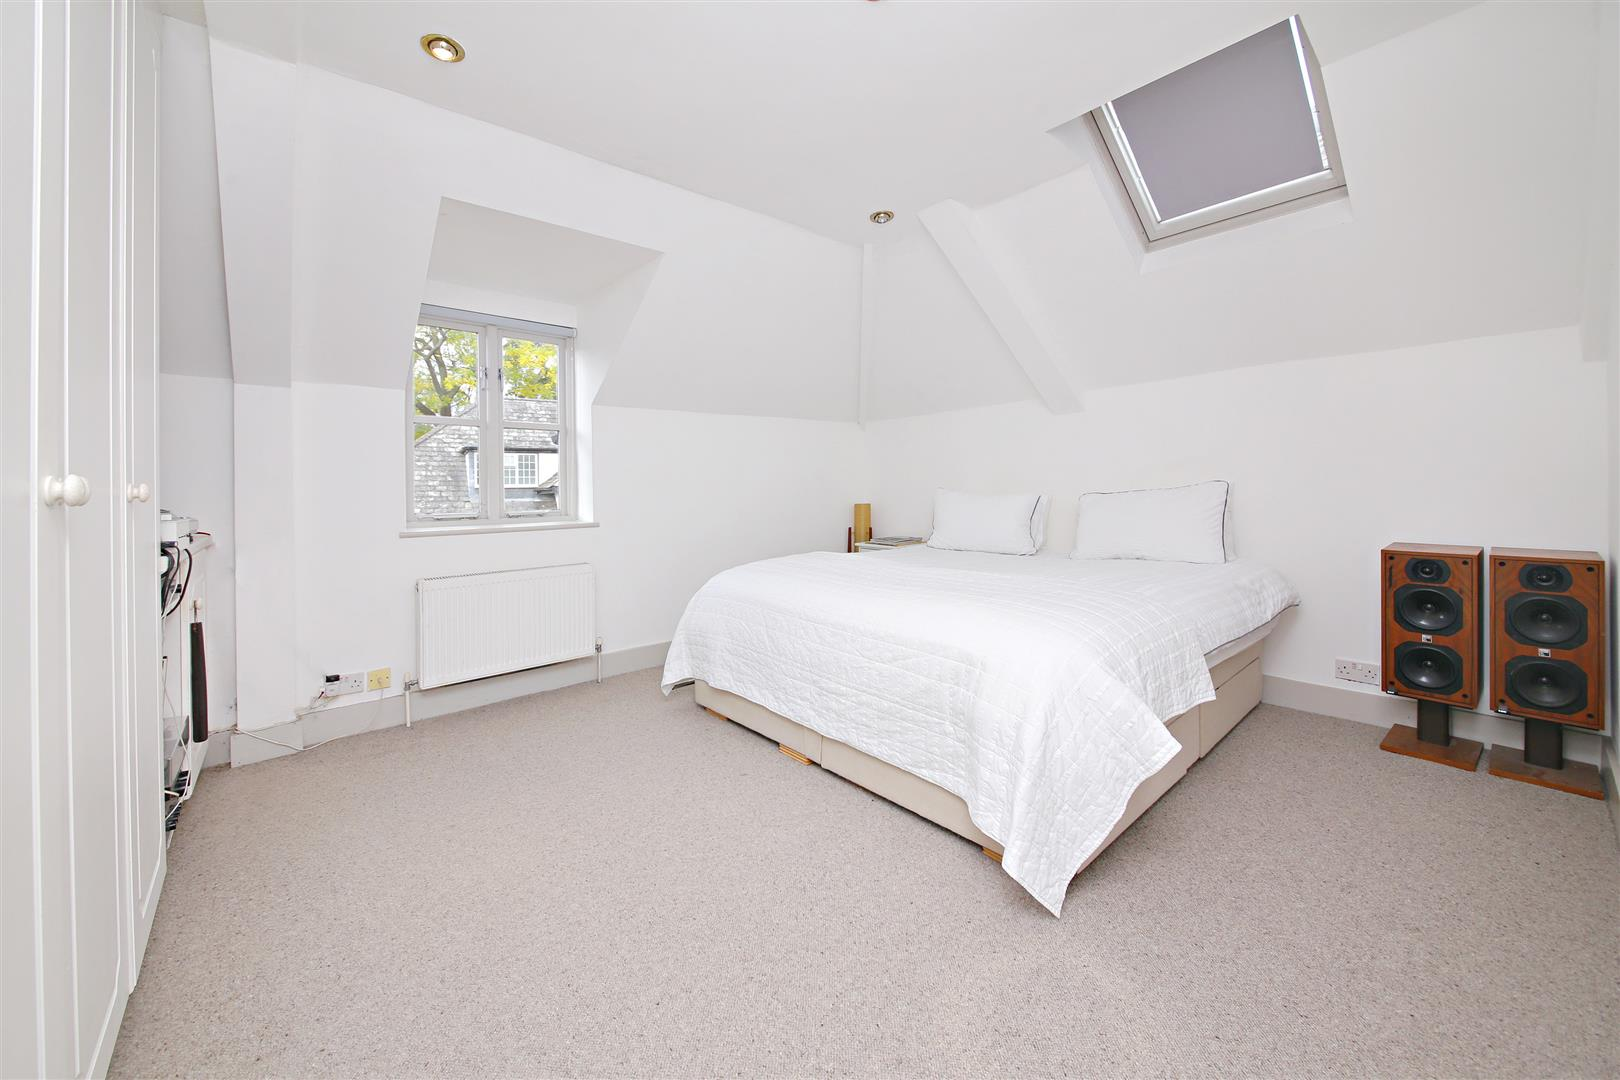 5 bed to rent in Letchmore Heath - (Property Image 13)